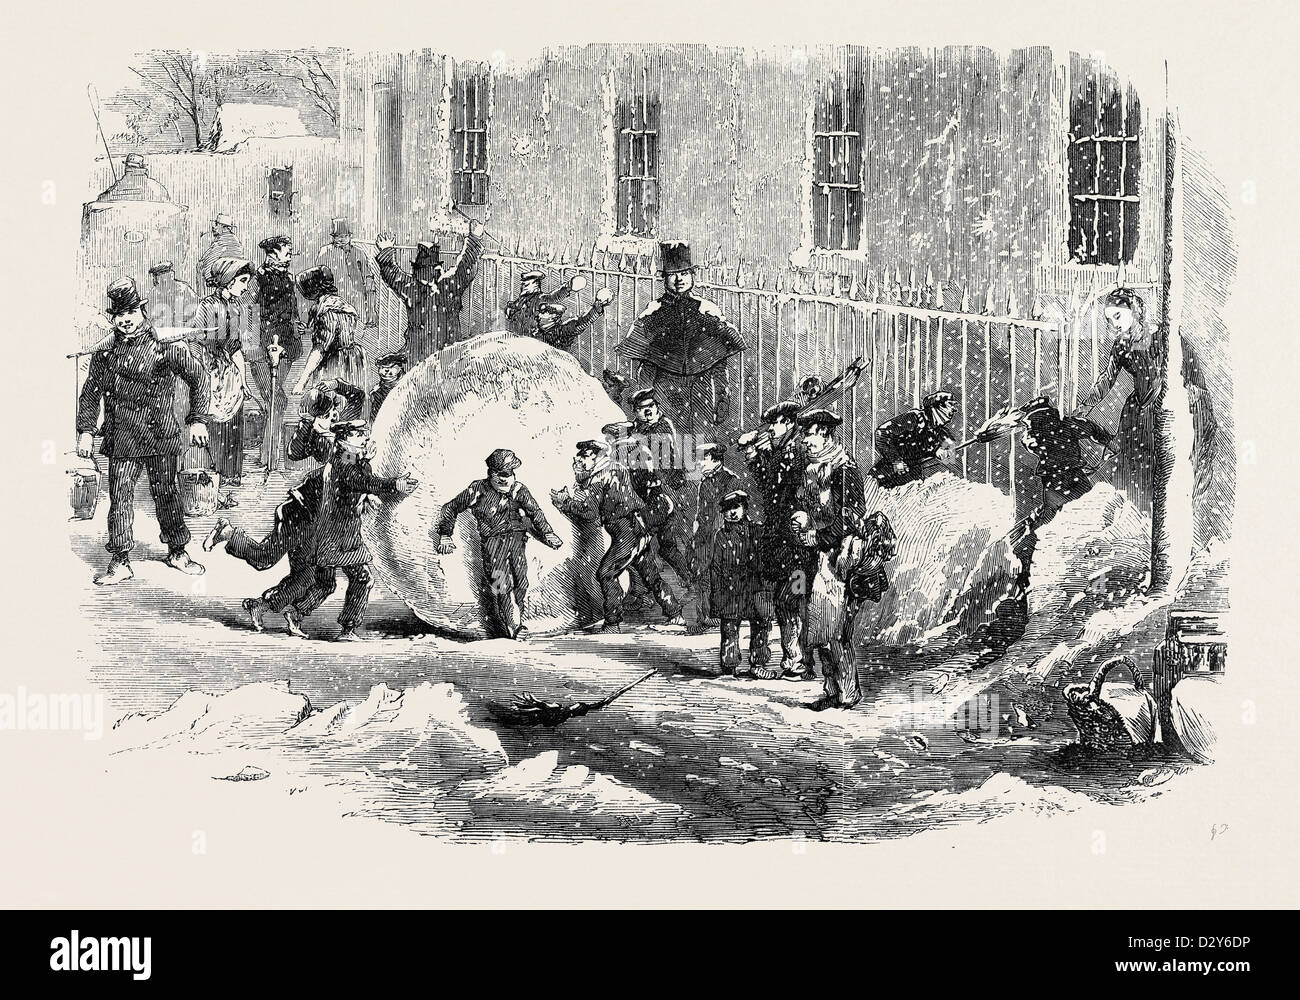 GATHERING AS IT GOES; or, THE MONSTER SNOWBALL - Stock Image